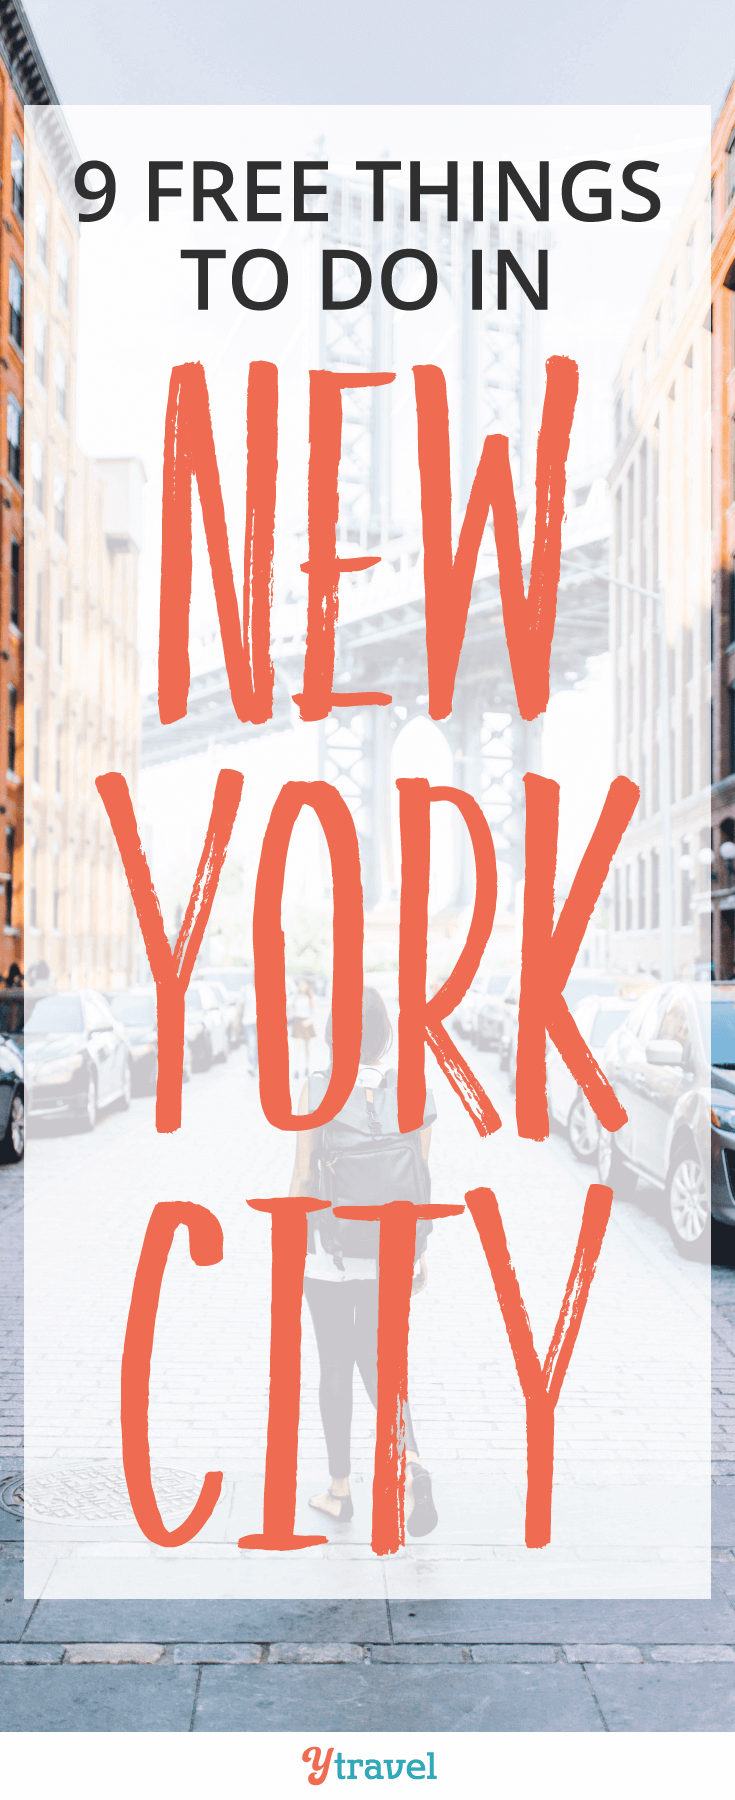 Need tips on FREE things to do in NYC? Christine shares her top 9 things to do in new York that won't cost you a cent, one of them $1. What a great way to visit NYC!!